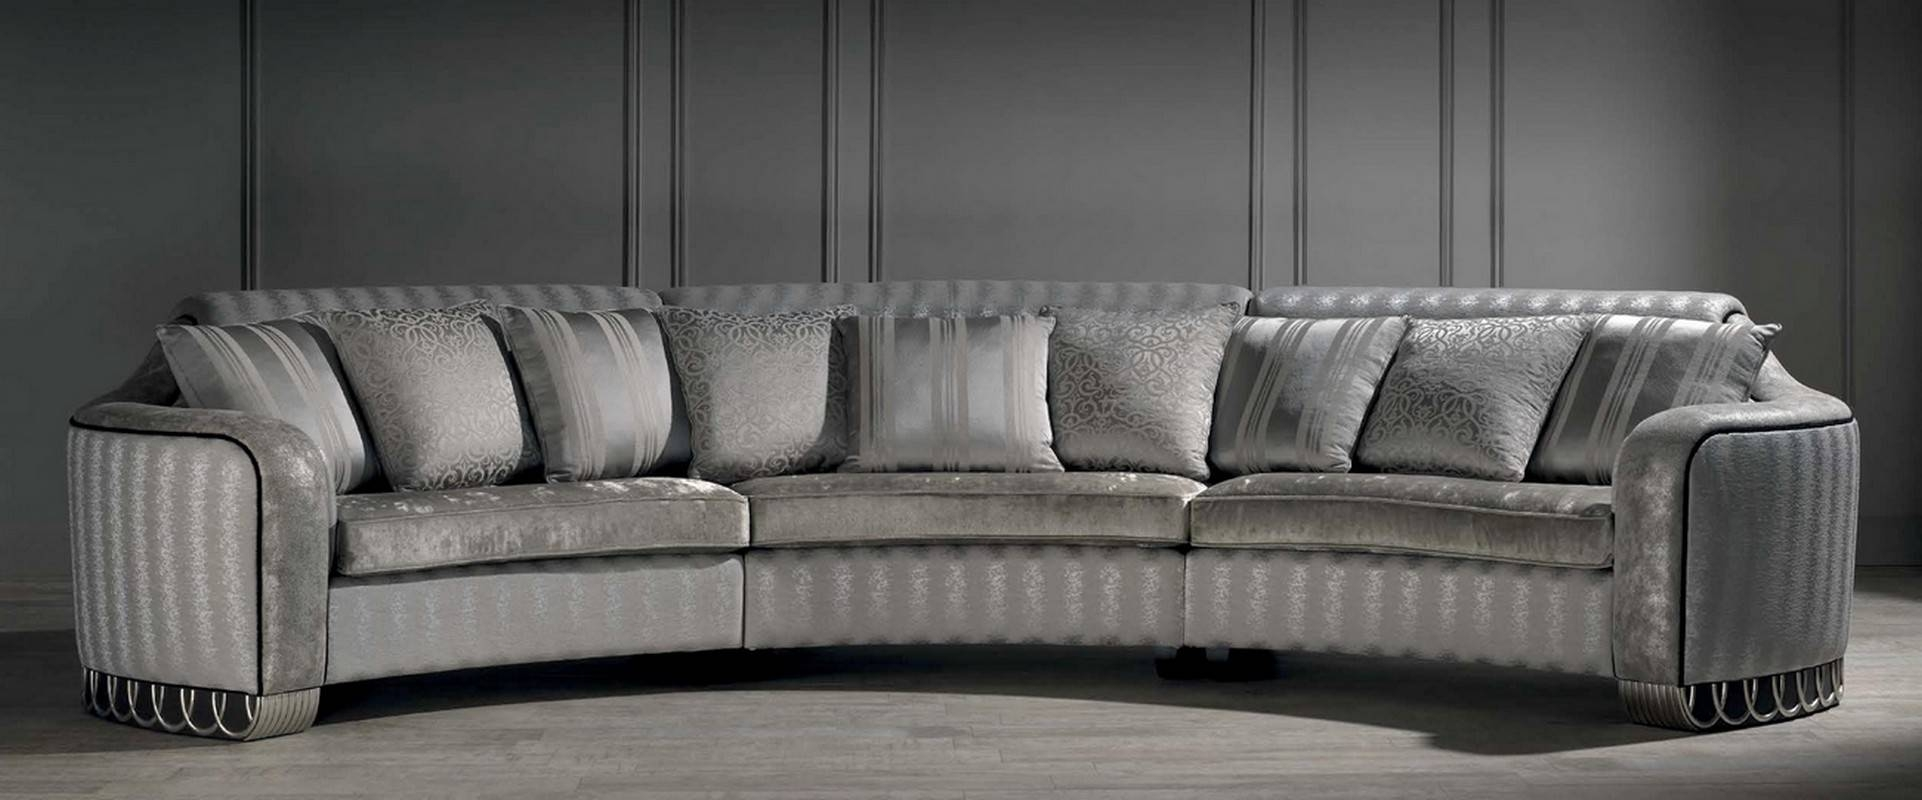 The Best Half Moon Sofas